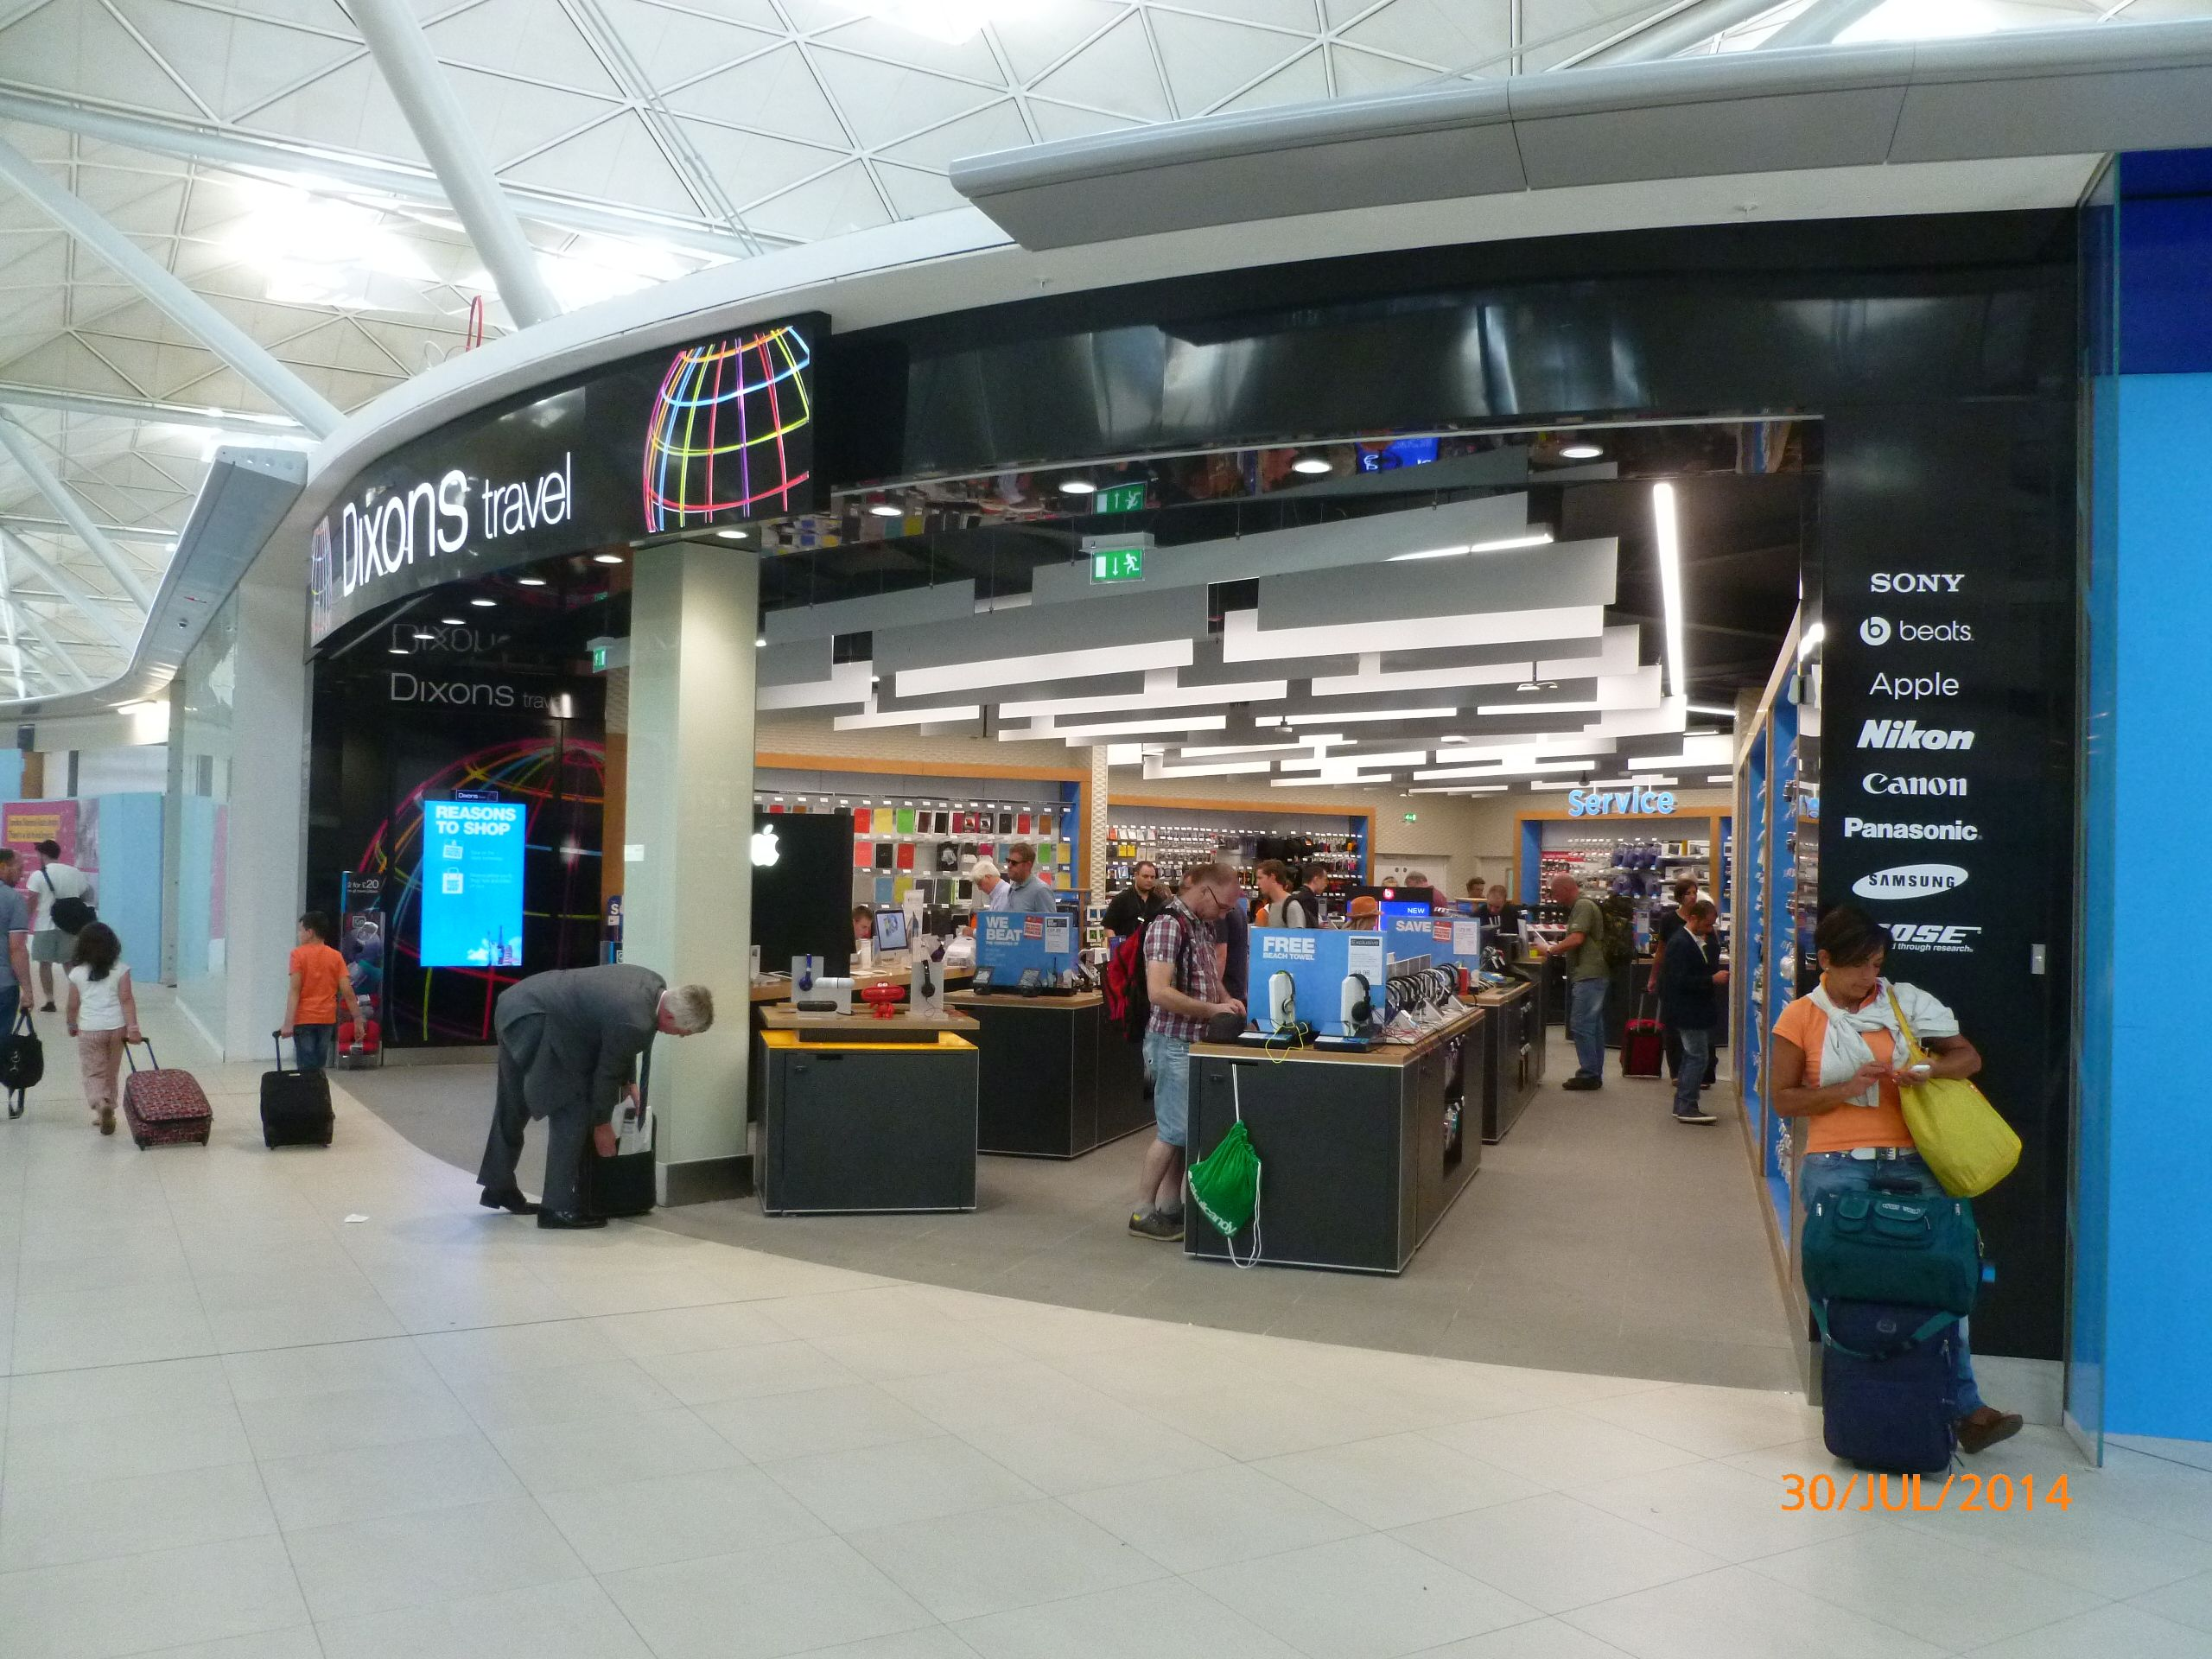 Our lovely new Dixons Travel store at Stansted airport